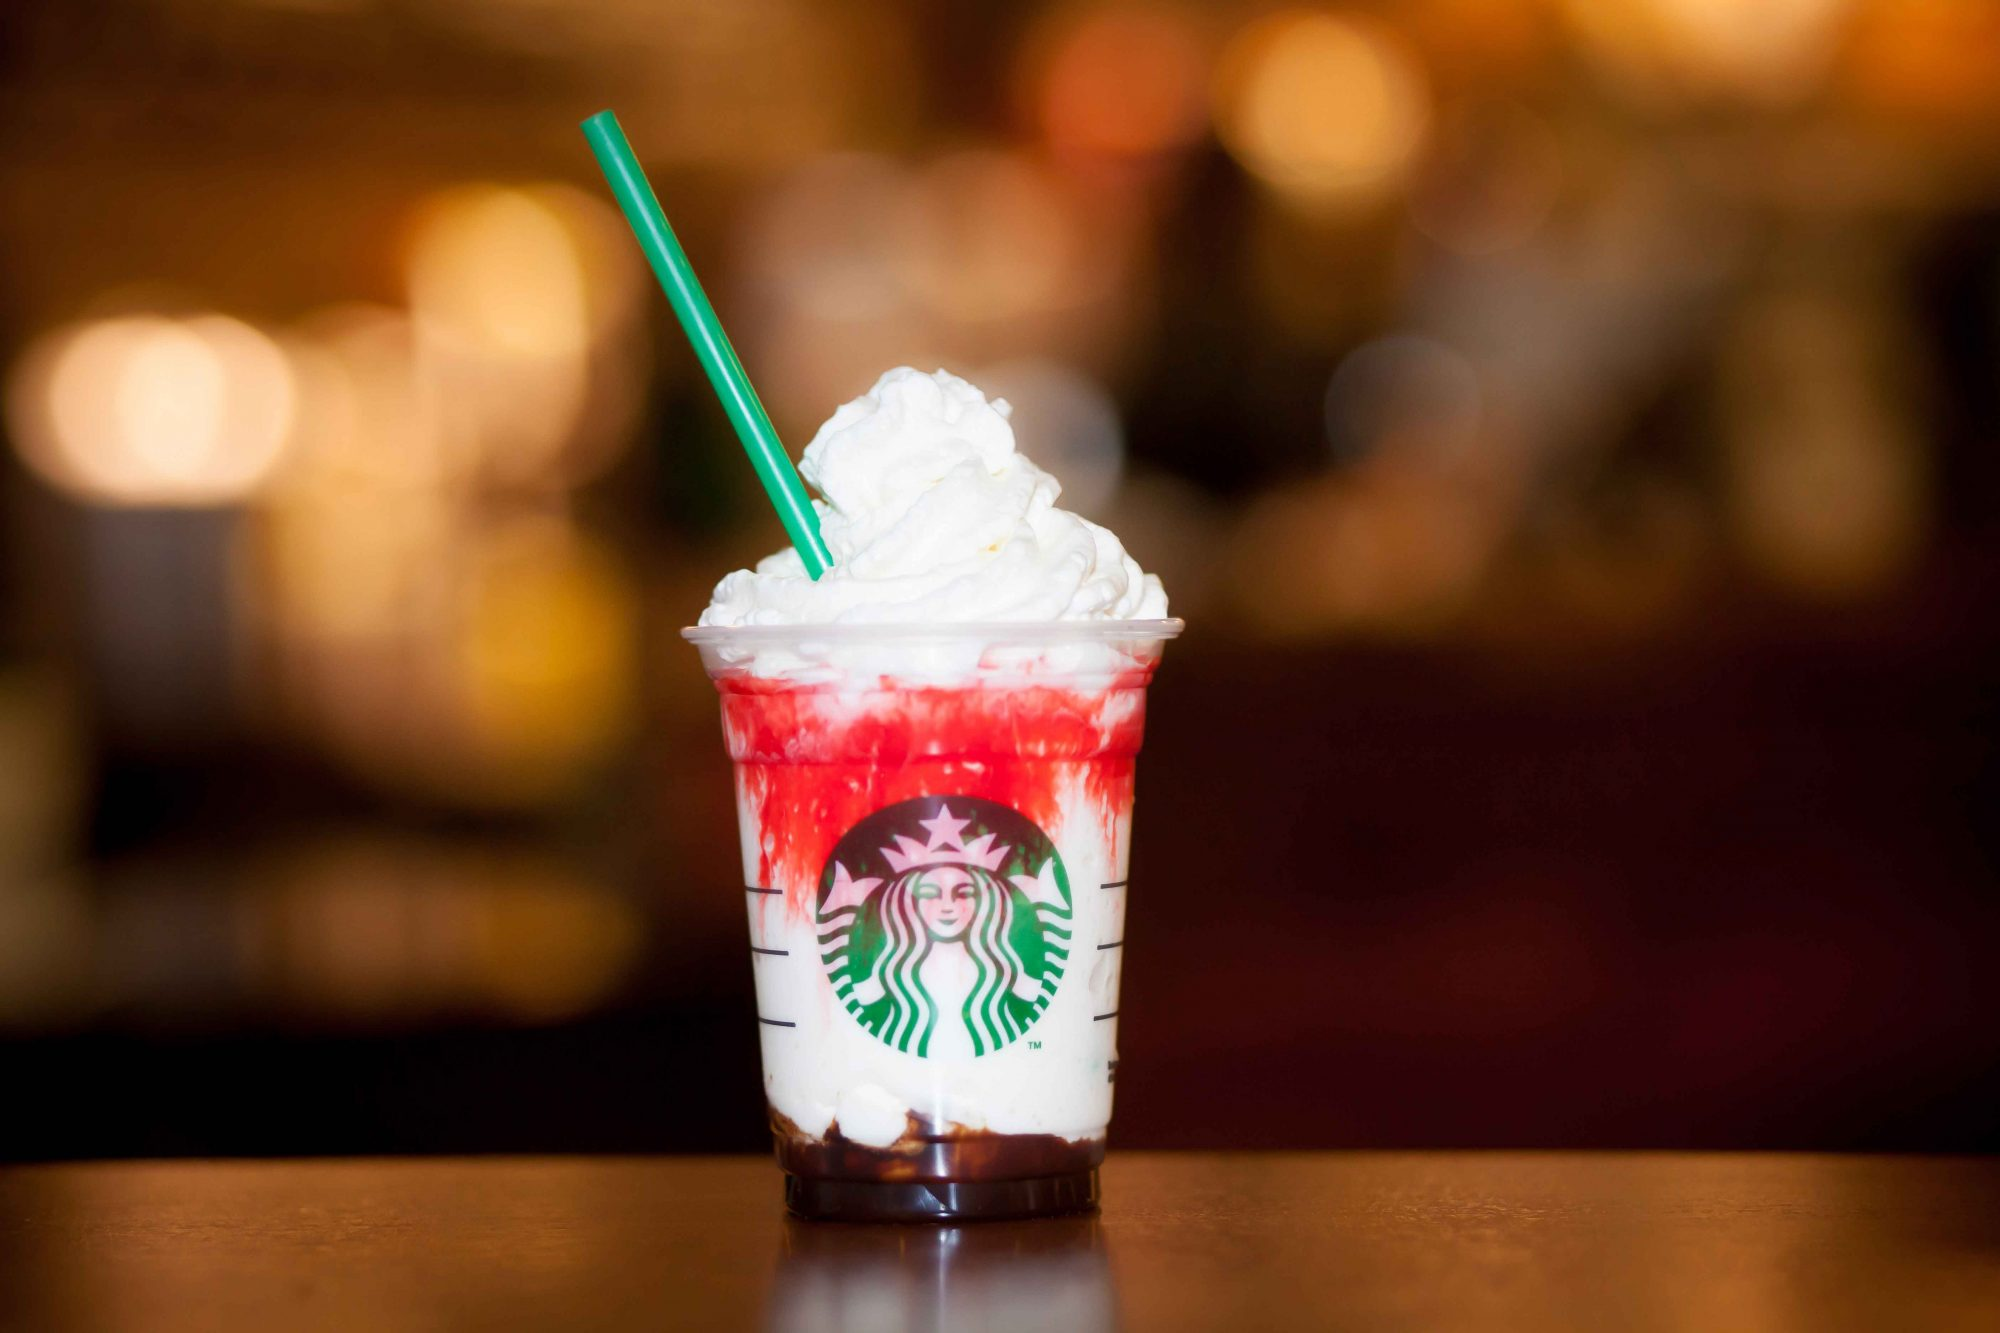 EC: The Starbucks Frappula Frappuccino Arrives Just in Time for Halloween